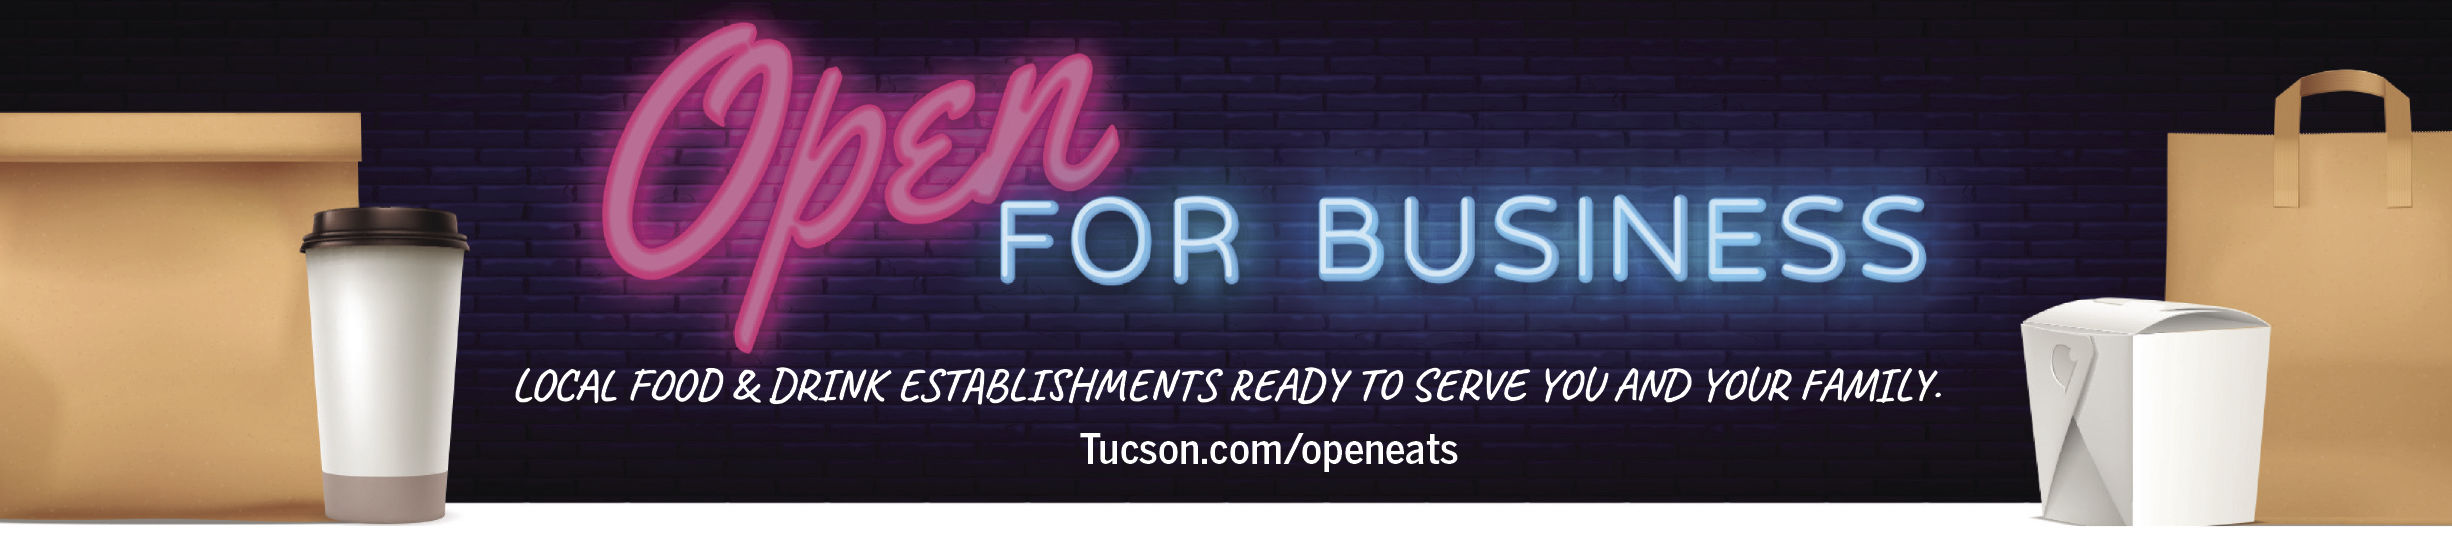 Tucson Restaurants Open Christmas Day 2020 Tucson area restaurants open for dine in, pick up or delivery